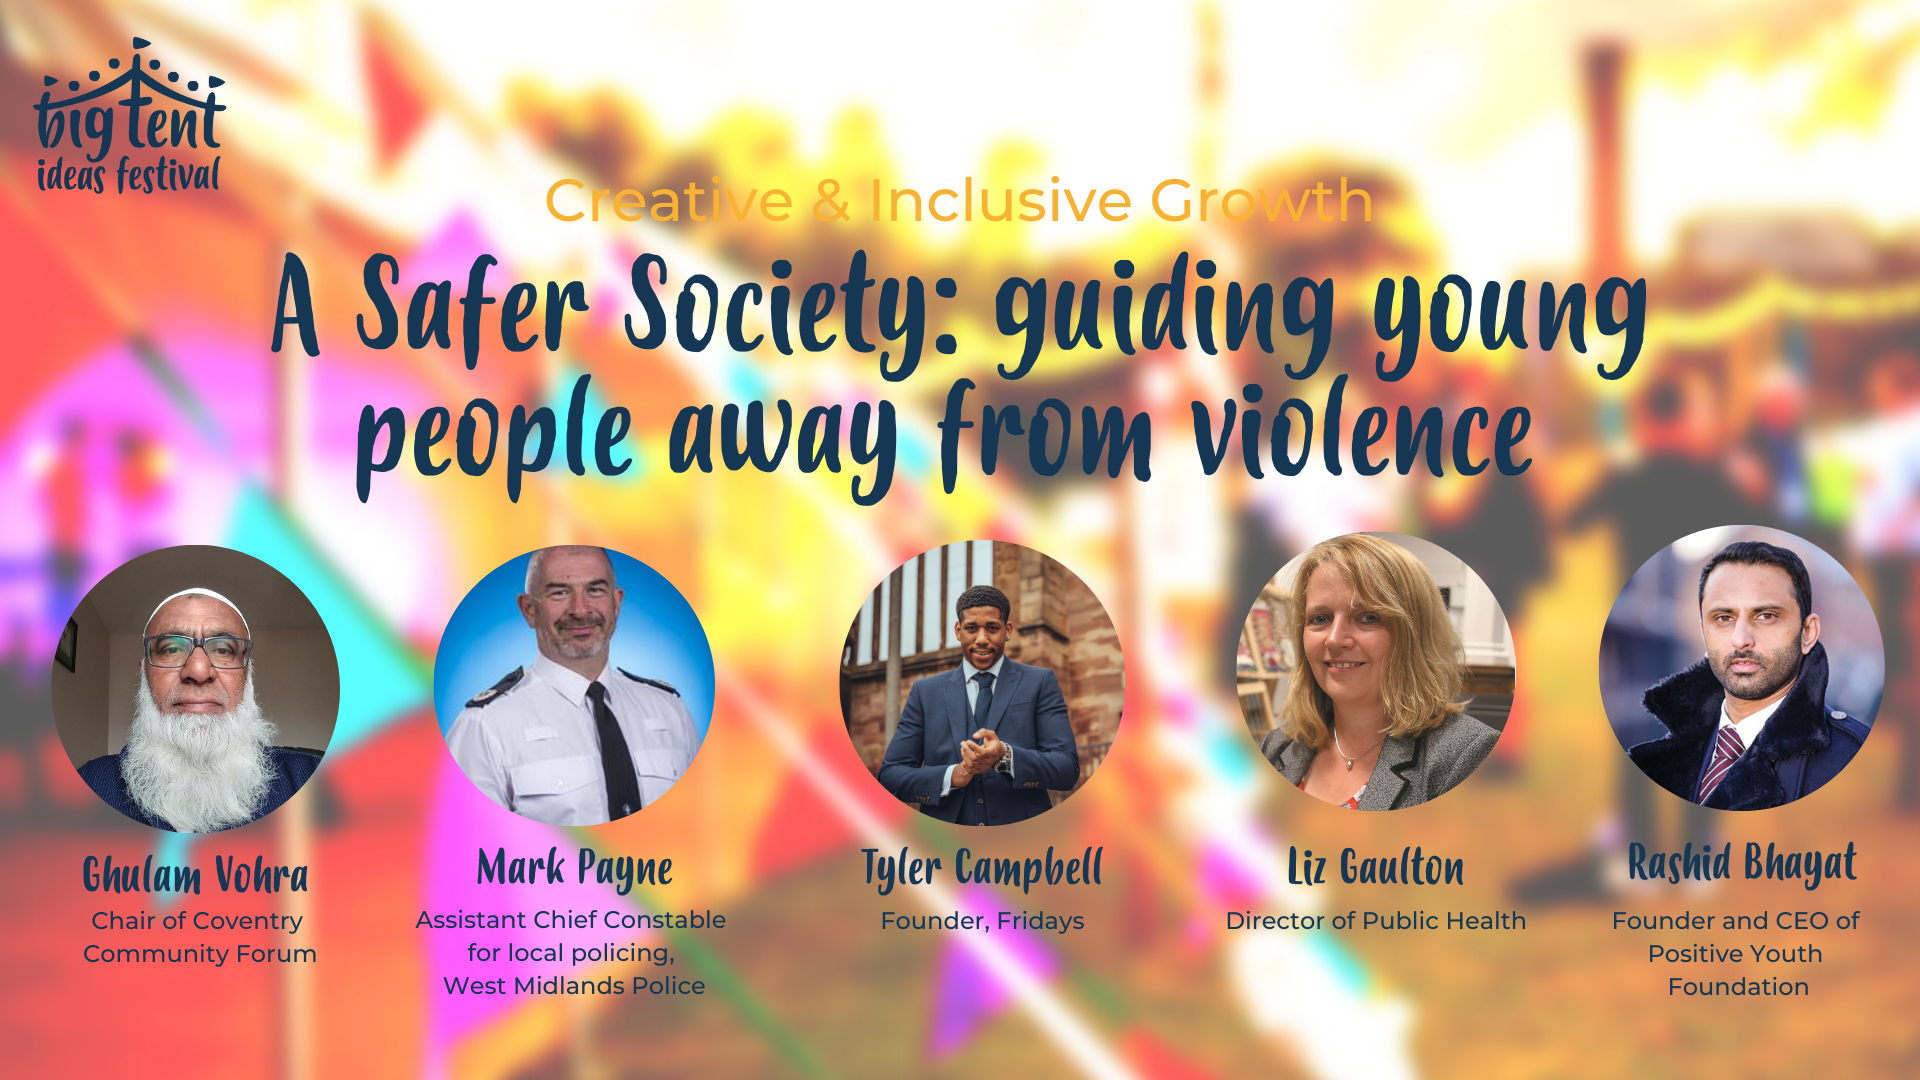 A Safer Society: guiding young people away from violence